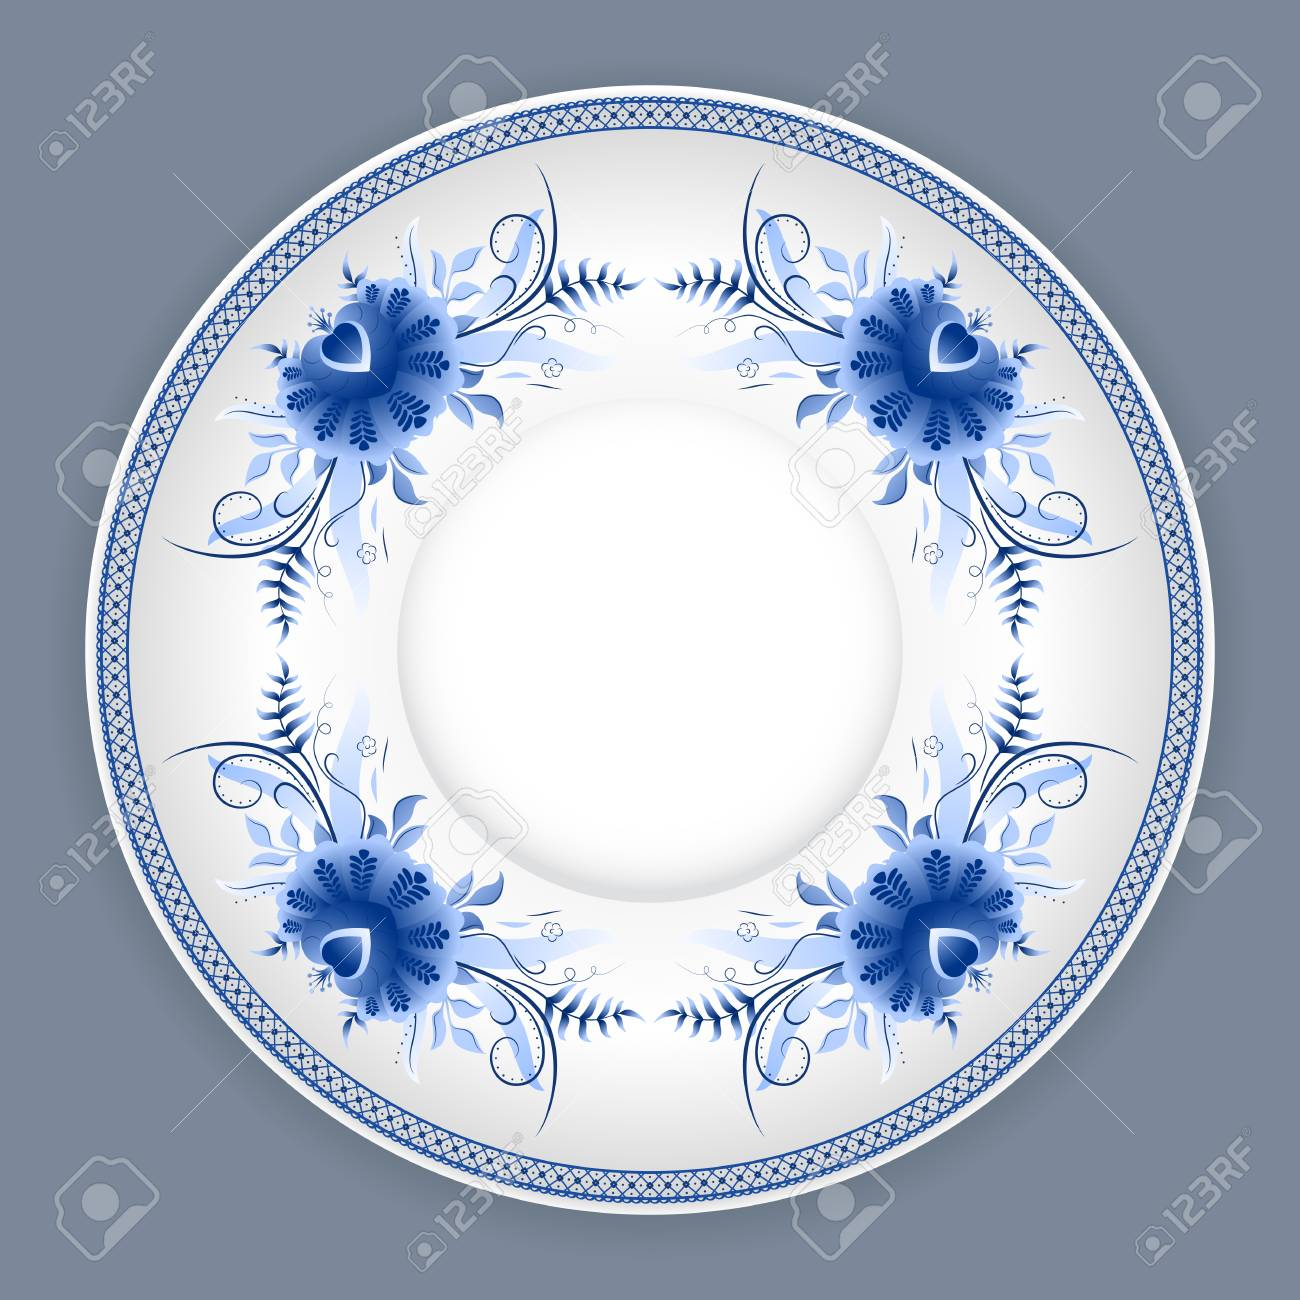 ceramic plate with classic